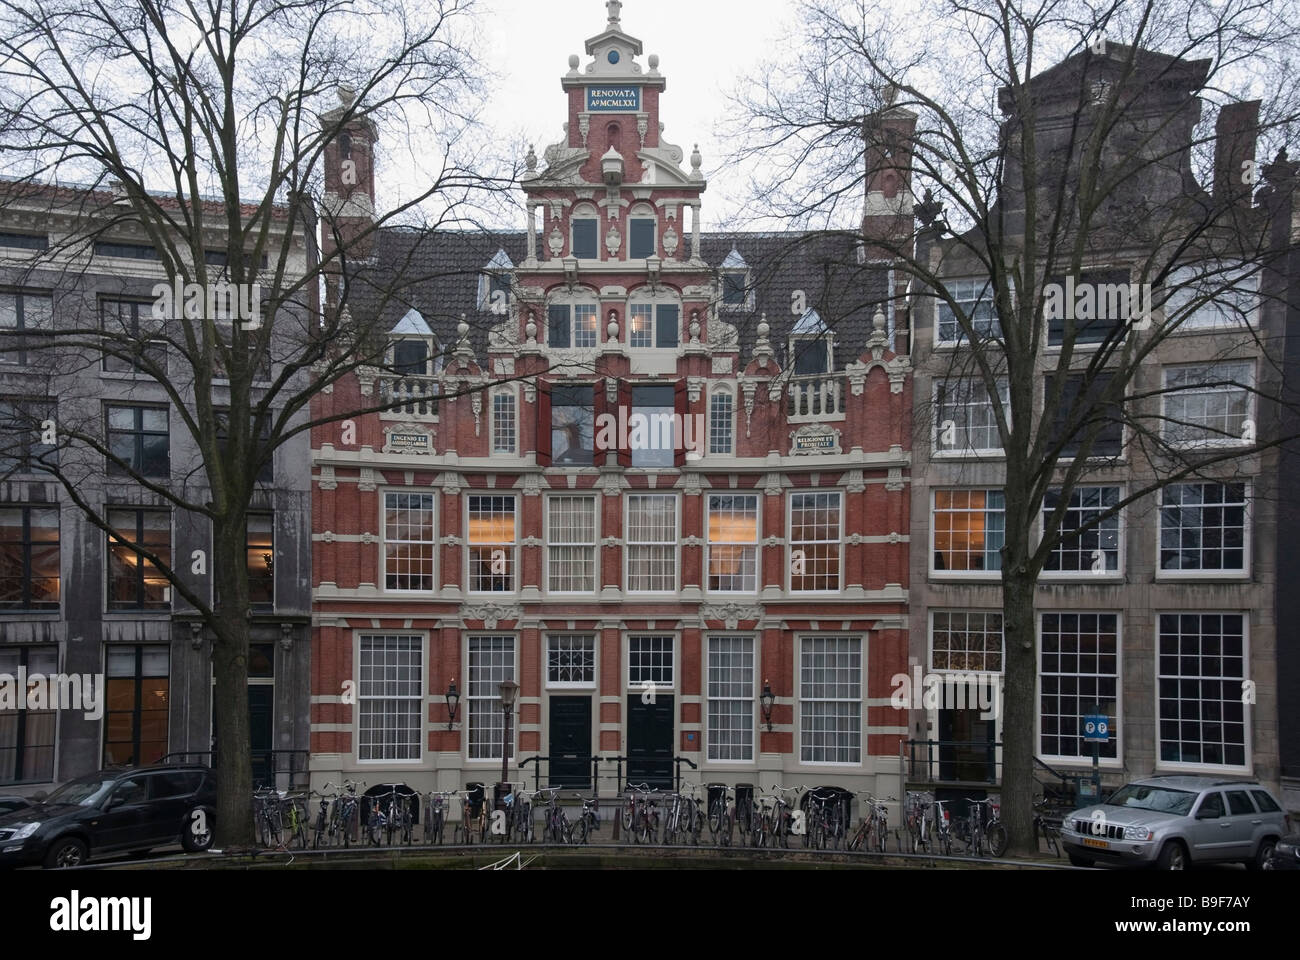 Typically Ornate Golden Age Merchants House Amsterdam - Stock Image